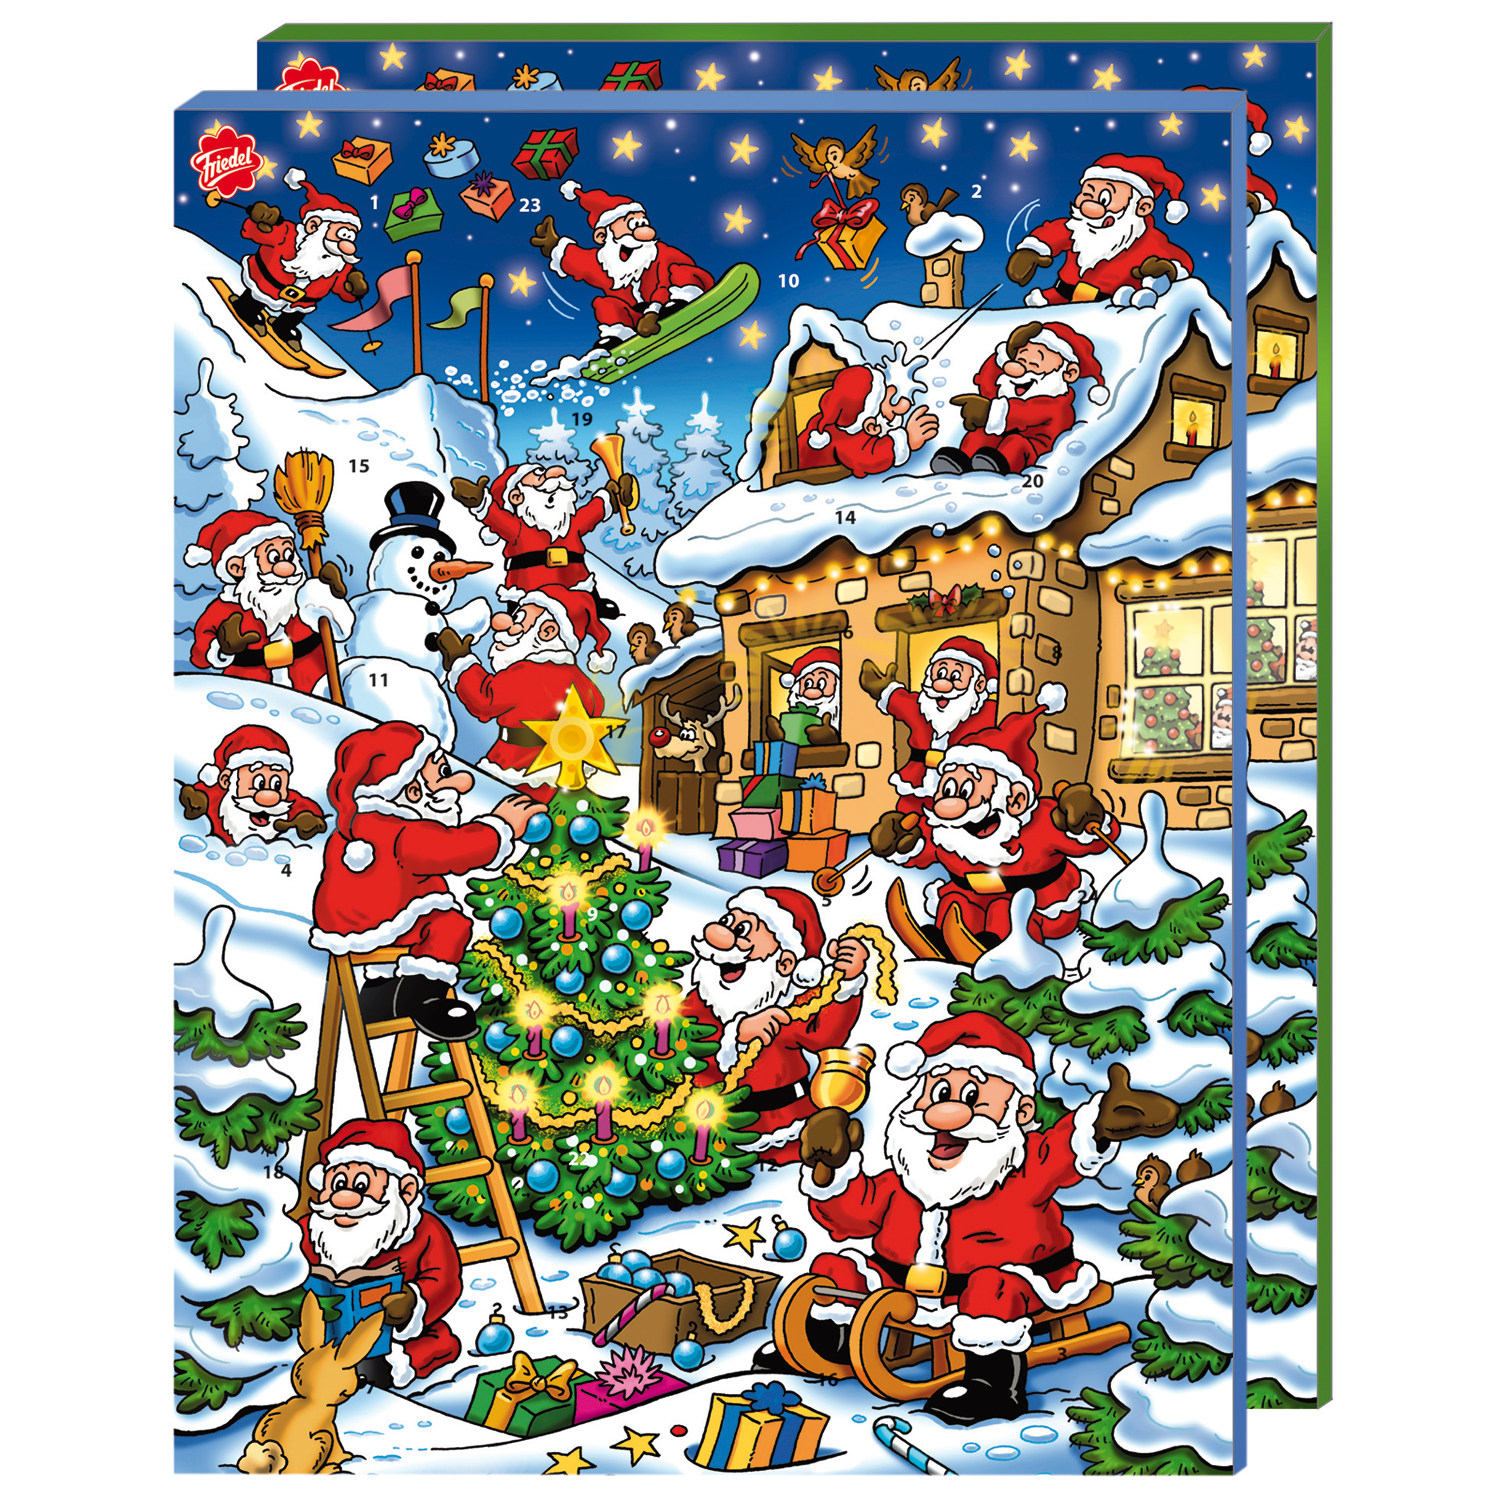 friedel adventskalender mit milchcremef llung online kaufen im world of sweets shop. Black Bedroom Furniture Sets. Home Design Ideas